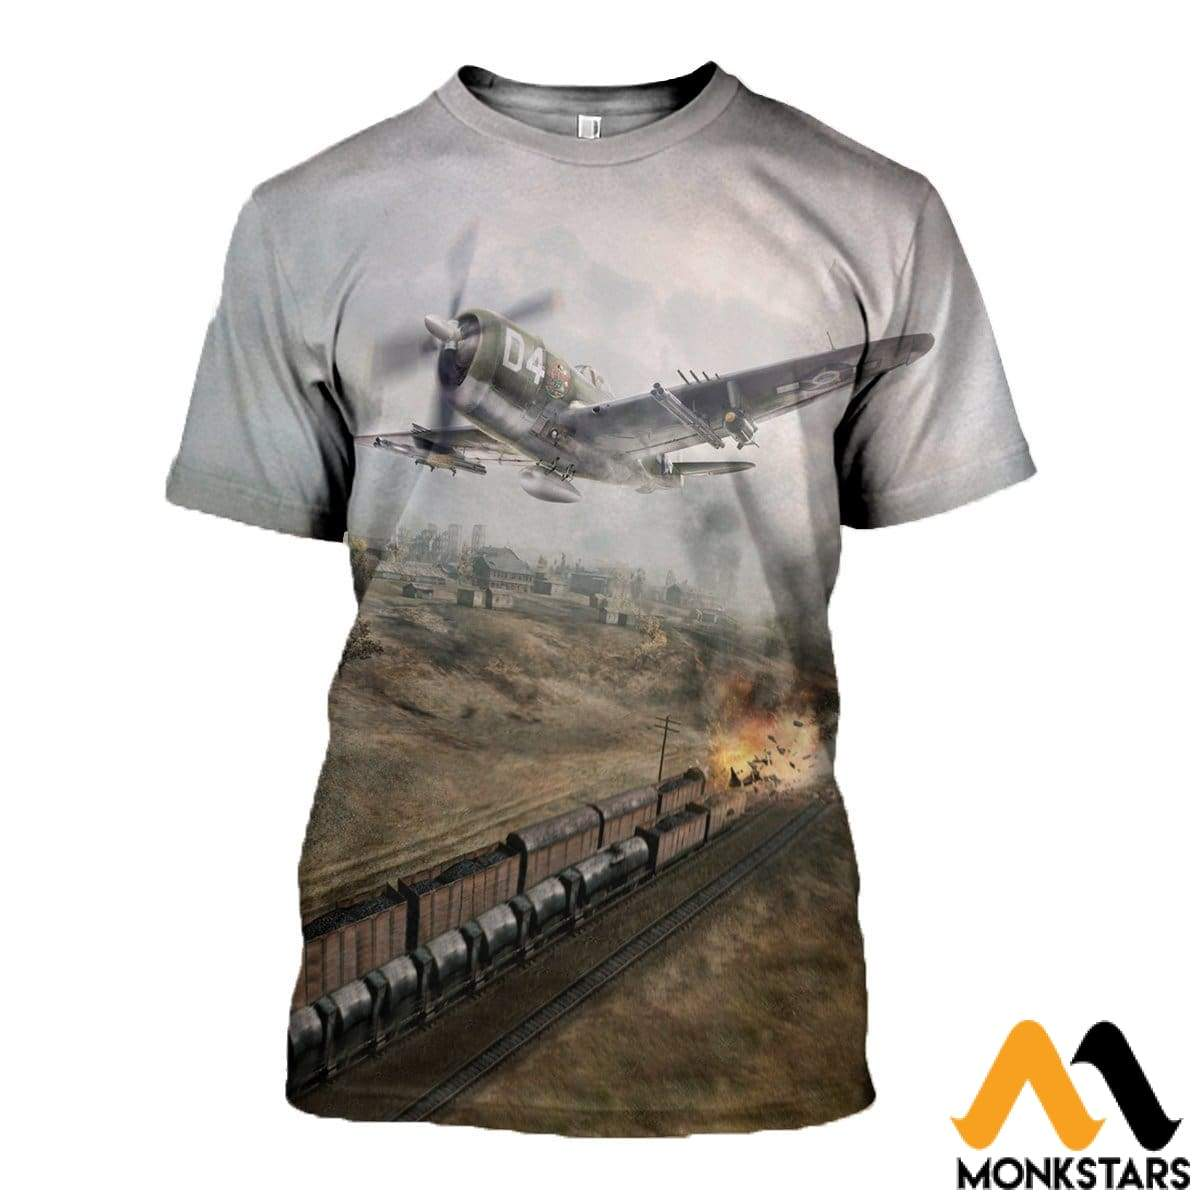 3D All Over Printed P47 Thunderbolt Shirts And Shorts T-Shirt / Xs Clothes